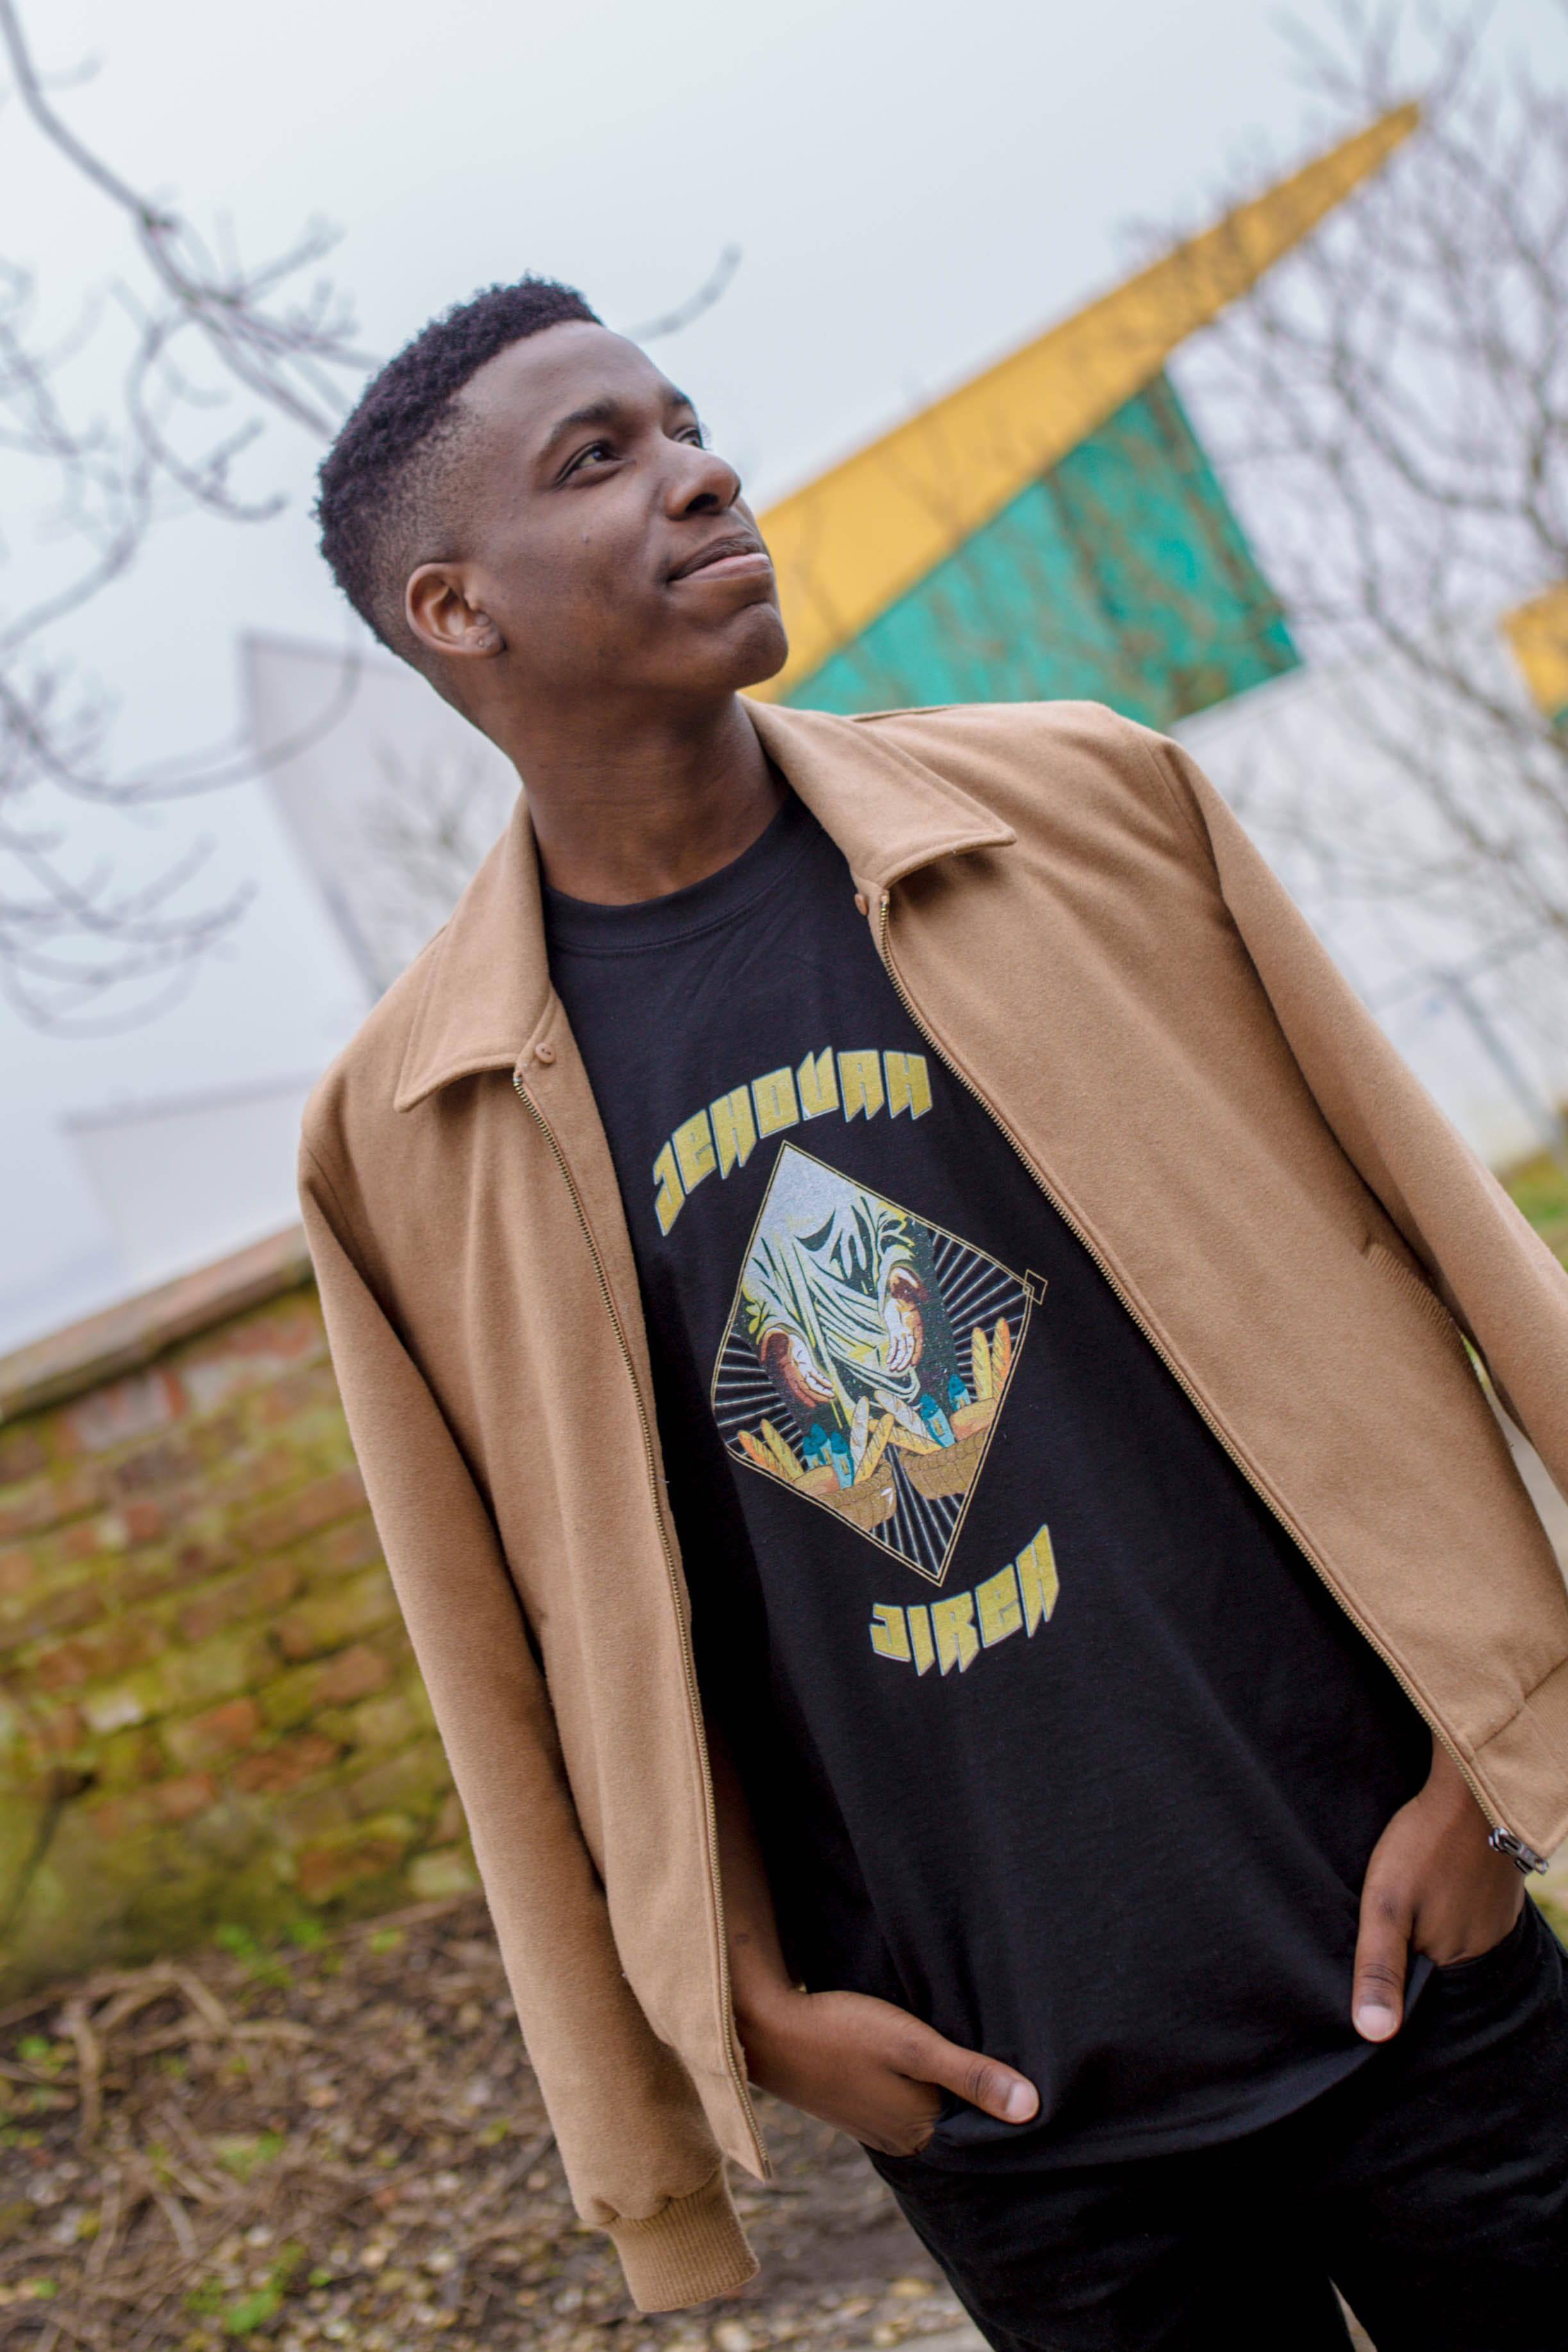 Jehovah Jireh T-shirt, Christian Clothing, Faith based, bible, men's clothing, Trend Savvy, black man, black model, university of lincoln.